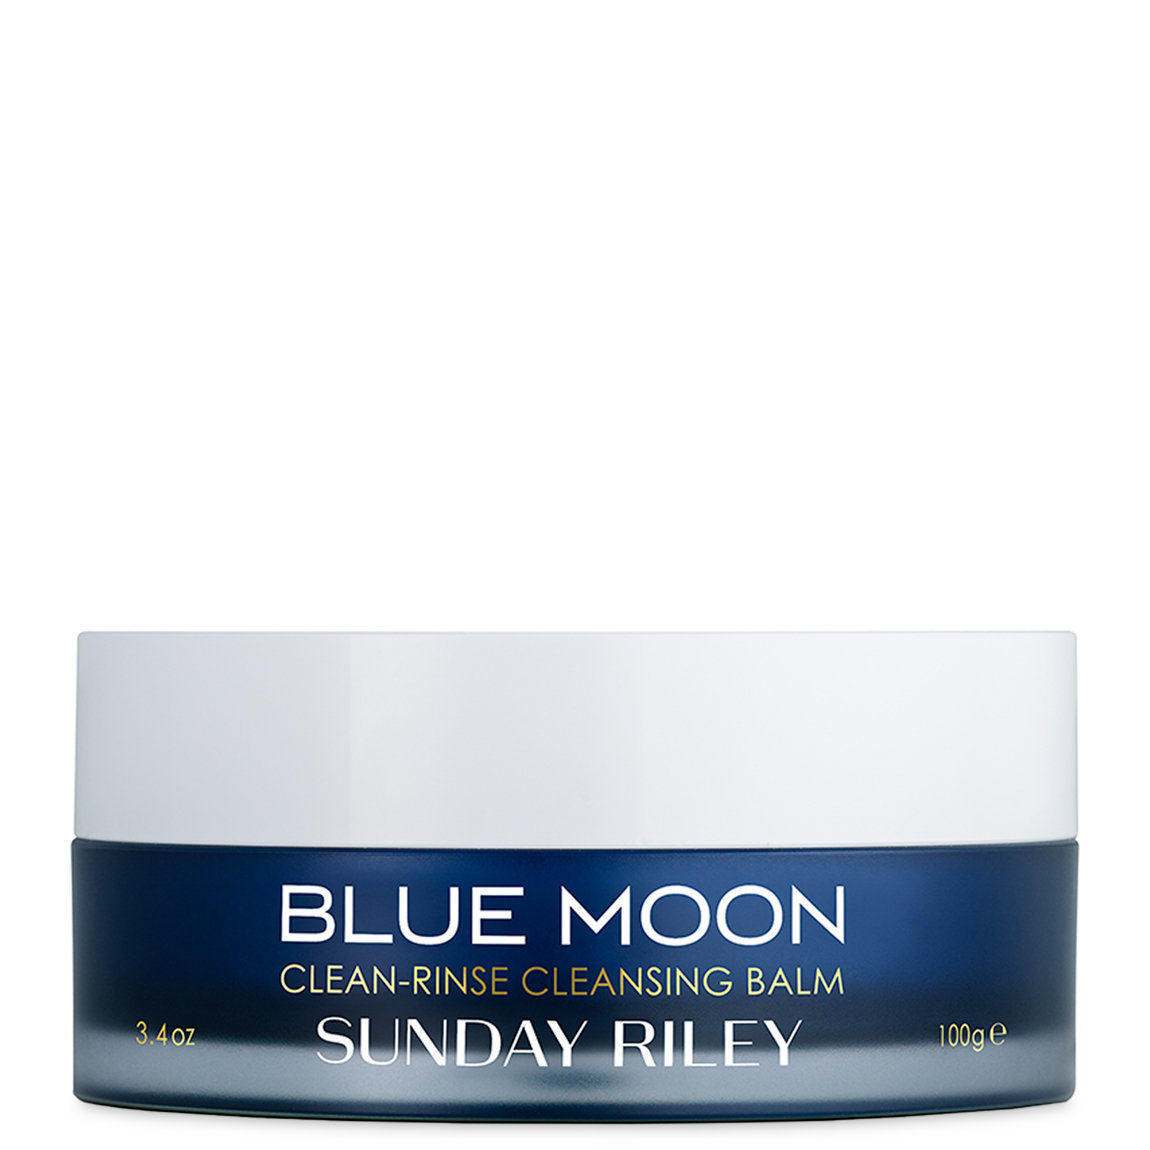 Sunday Riley Blue Moon Clean-Rinse Cleansing Balm alternative view 1 - product swatch.